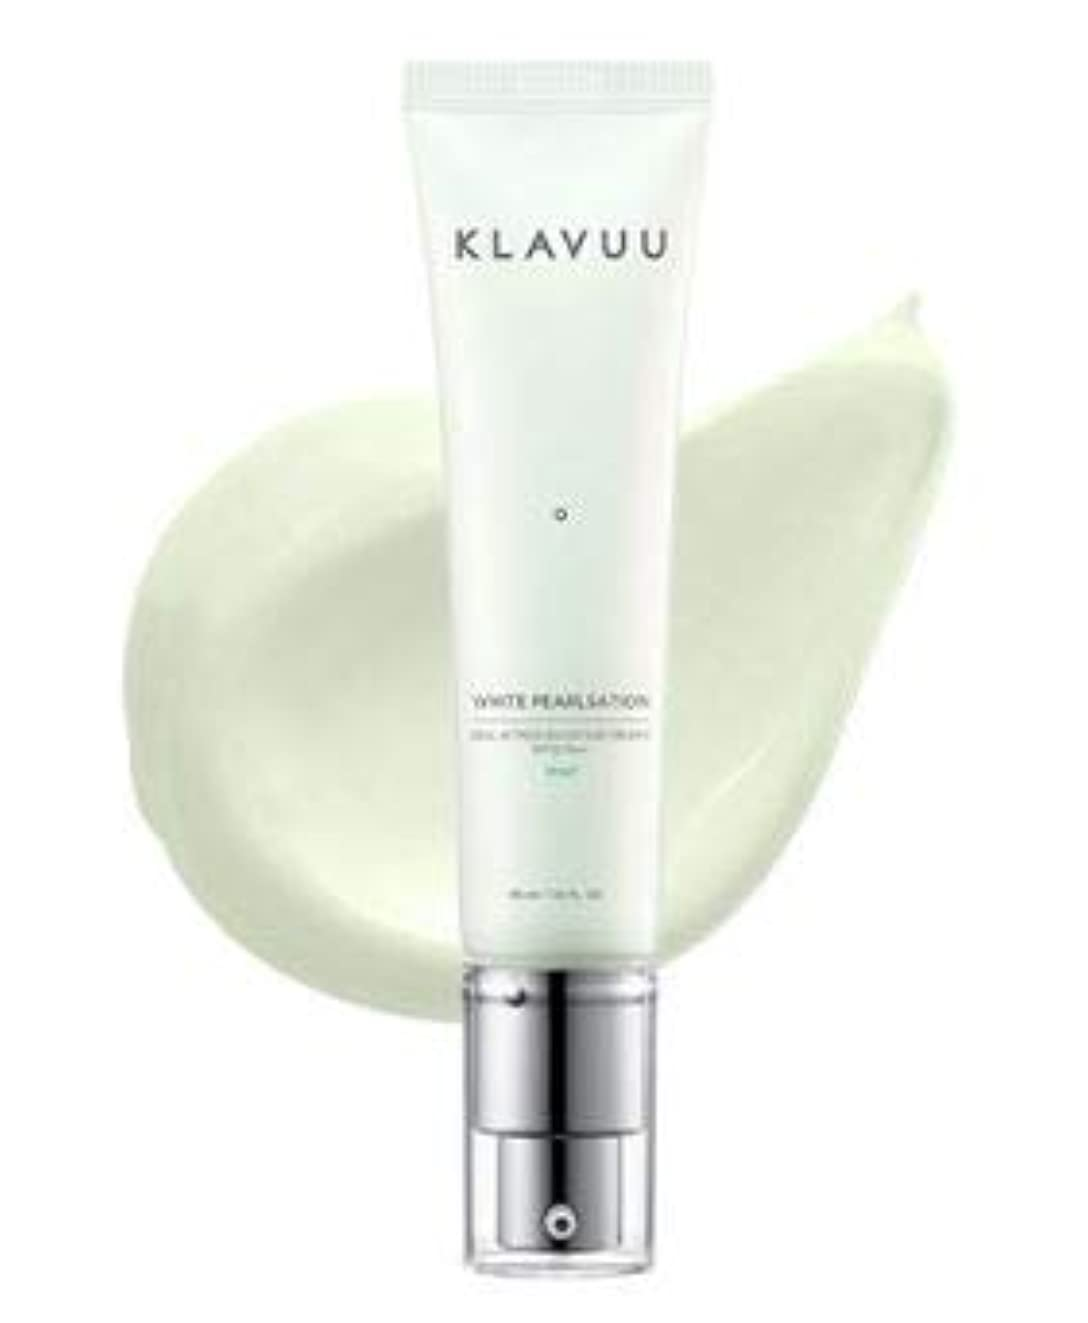 振り返る遅滞偽善[KLAVUU] WHITE PEARLSATION Ideal Actress Backstage Cream SPF30 PA++女優クリーム #MINT [並行輸入品]